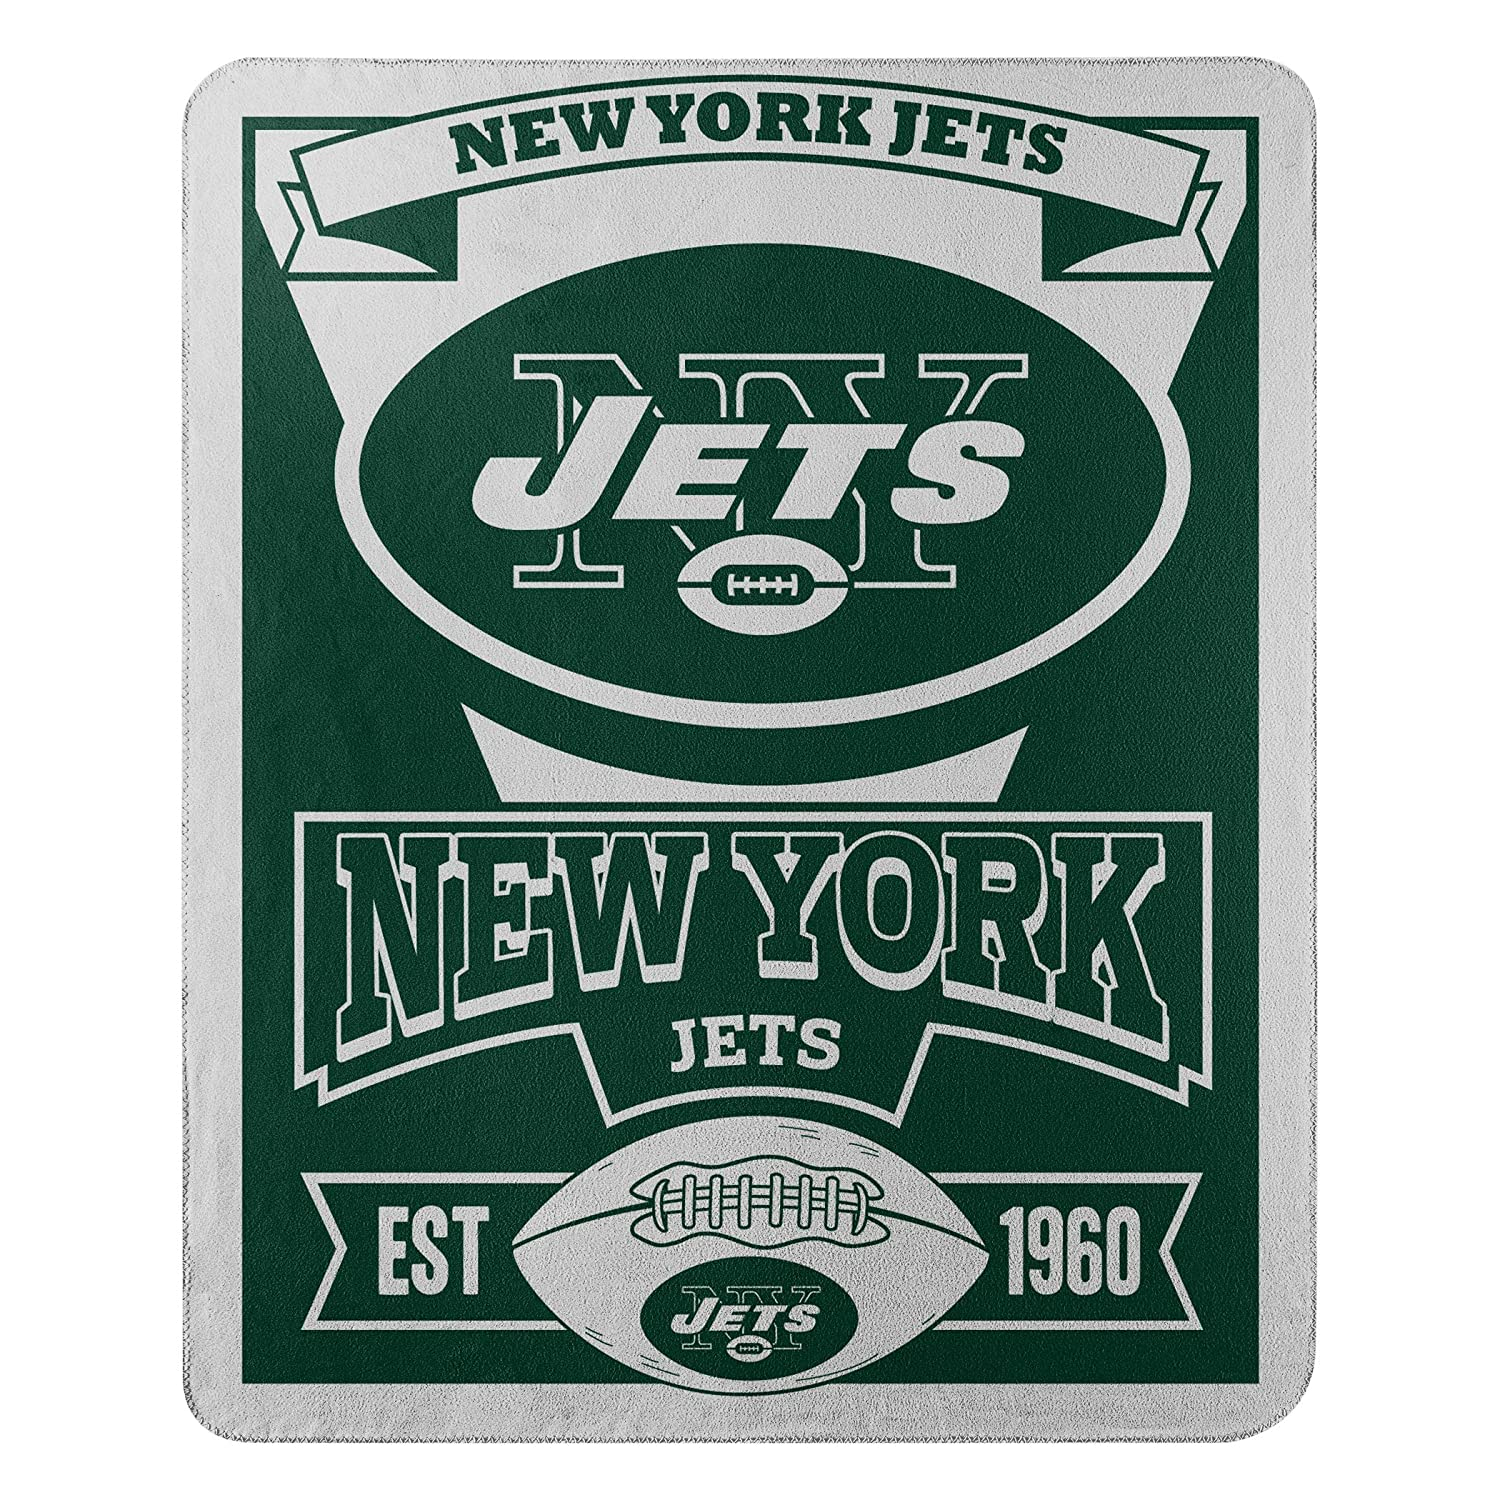 """The Northwest Company Officially Licensed NFL New York Jets Marque Printed Fleece Throw Blanket, 50"""" x 60"""", Multi Color"""